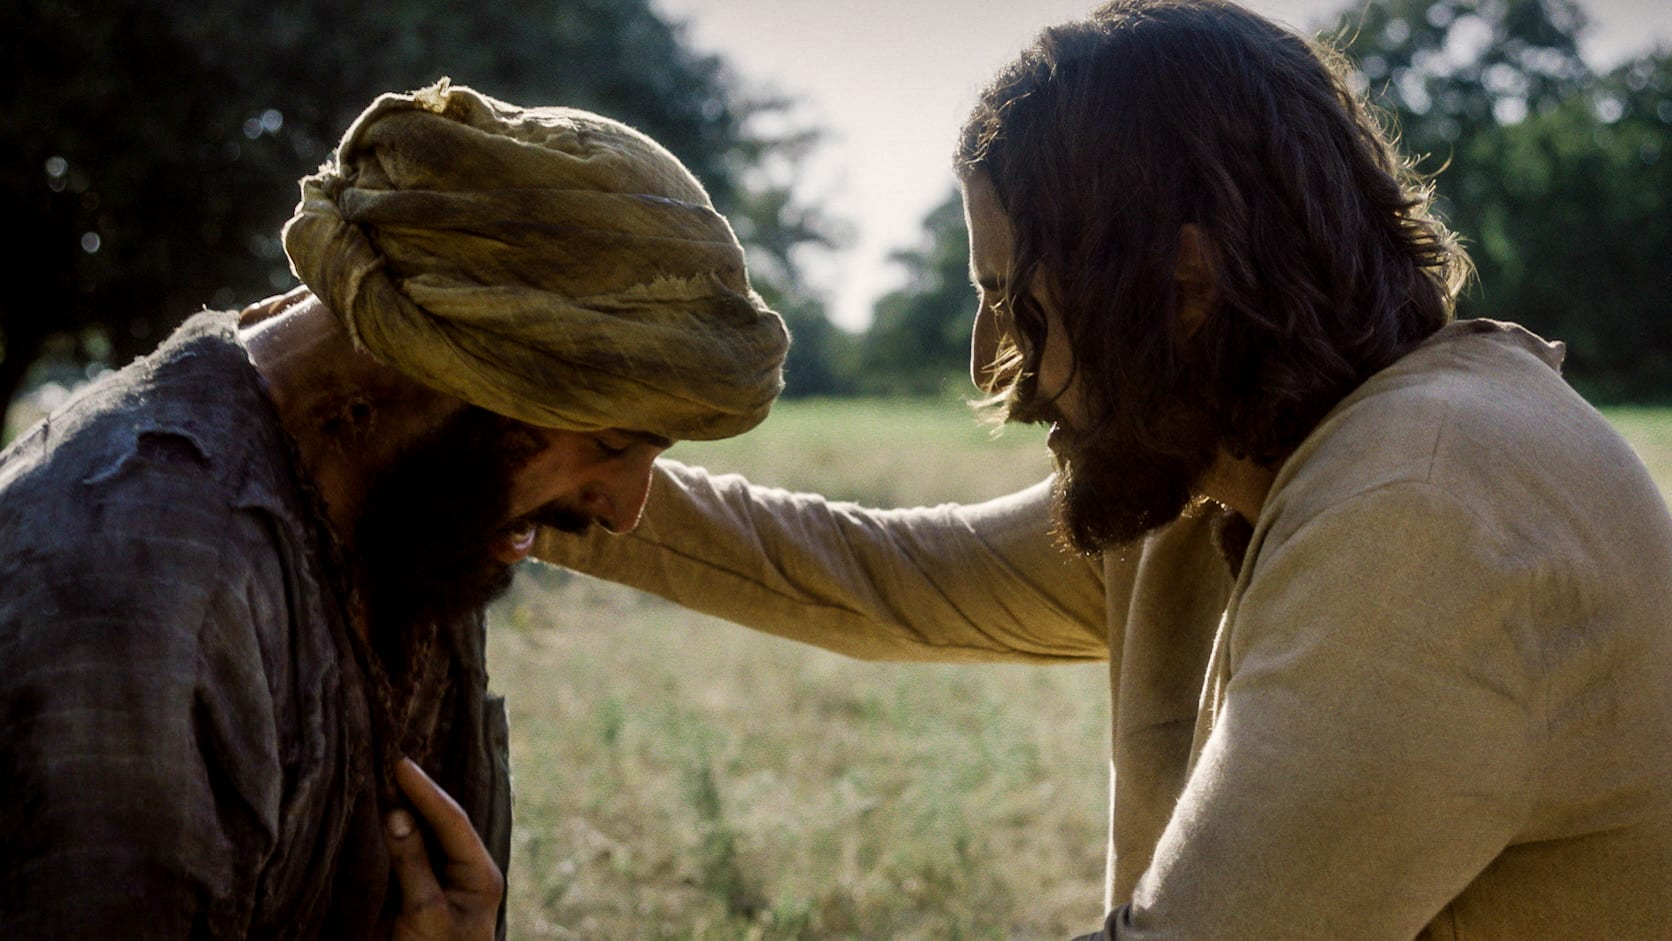 A GLIMPSE OF HOW JESUS DID MINISTRY (Luke 5:12-26)